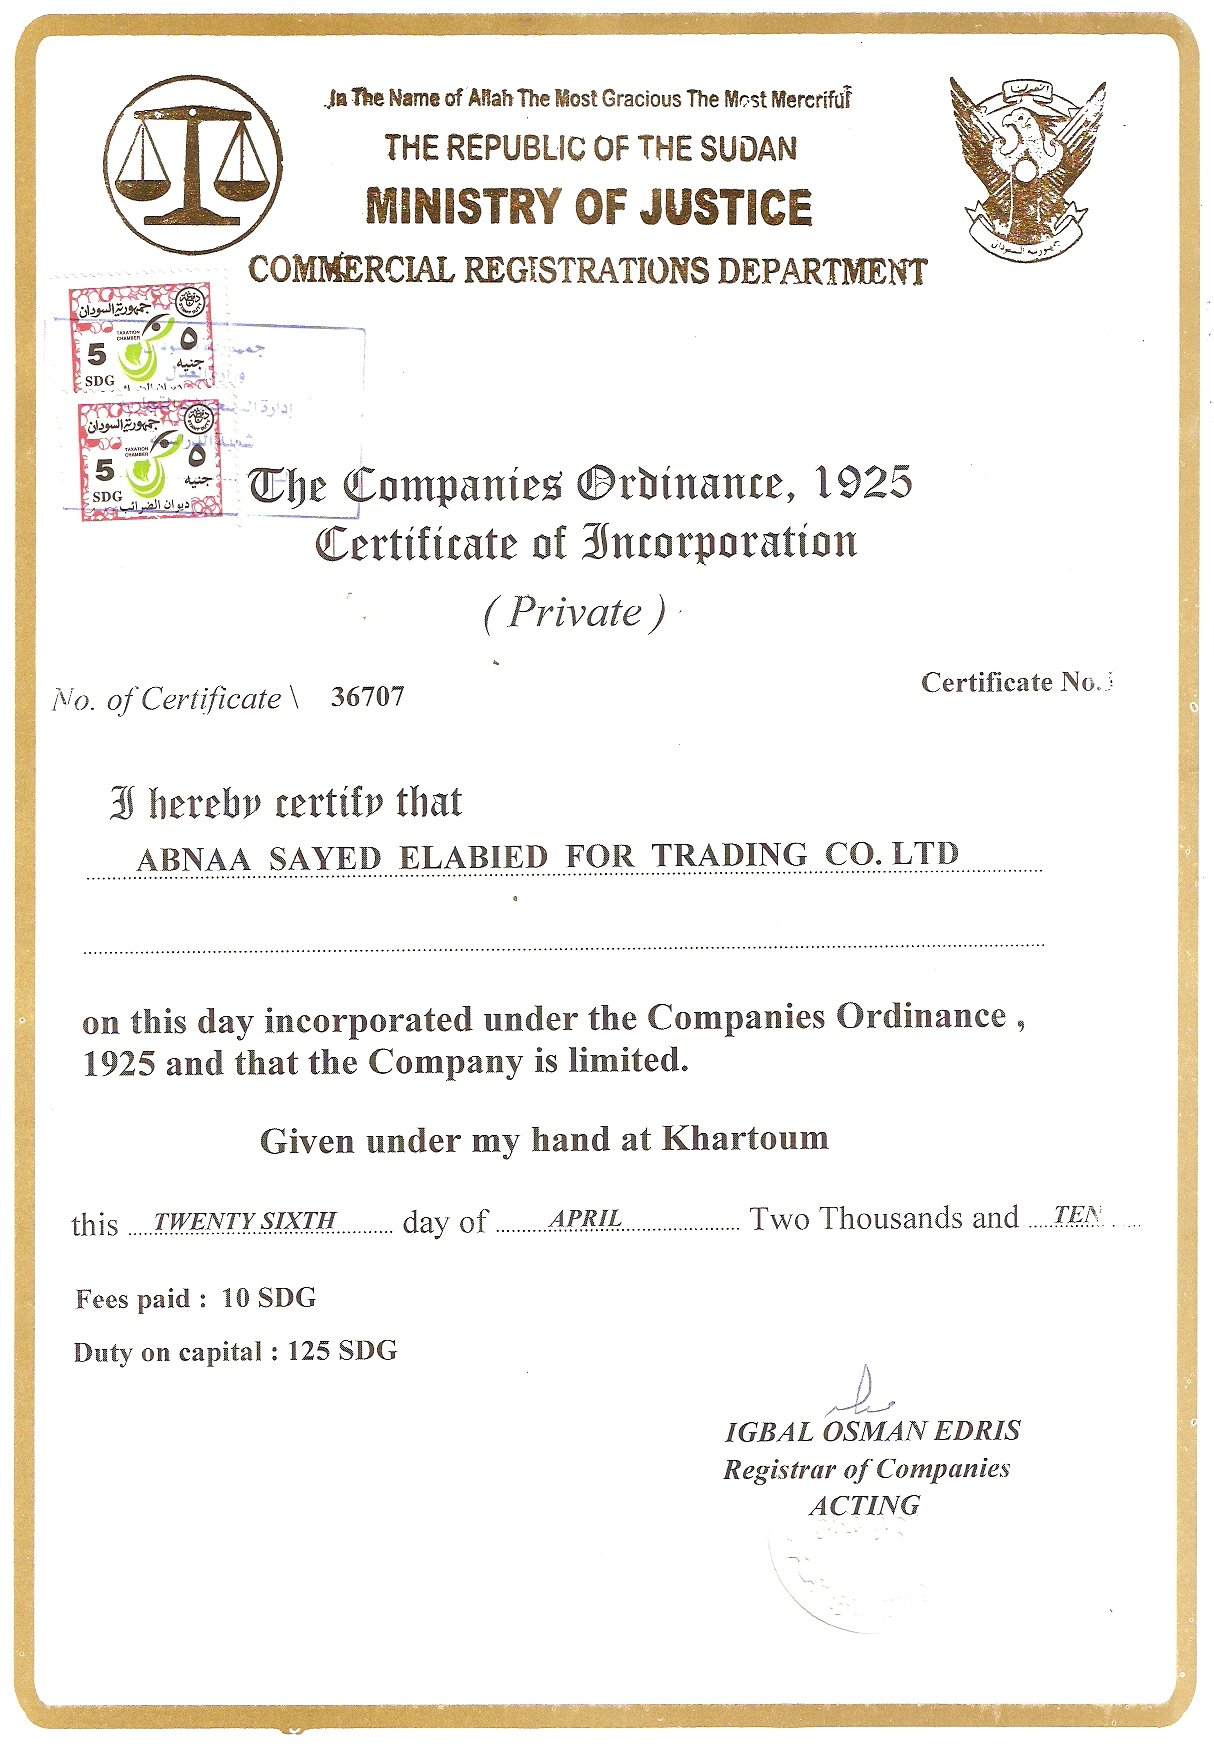 Certifiate of Incoroporation